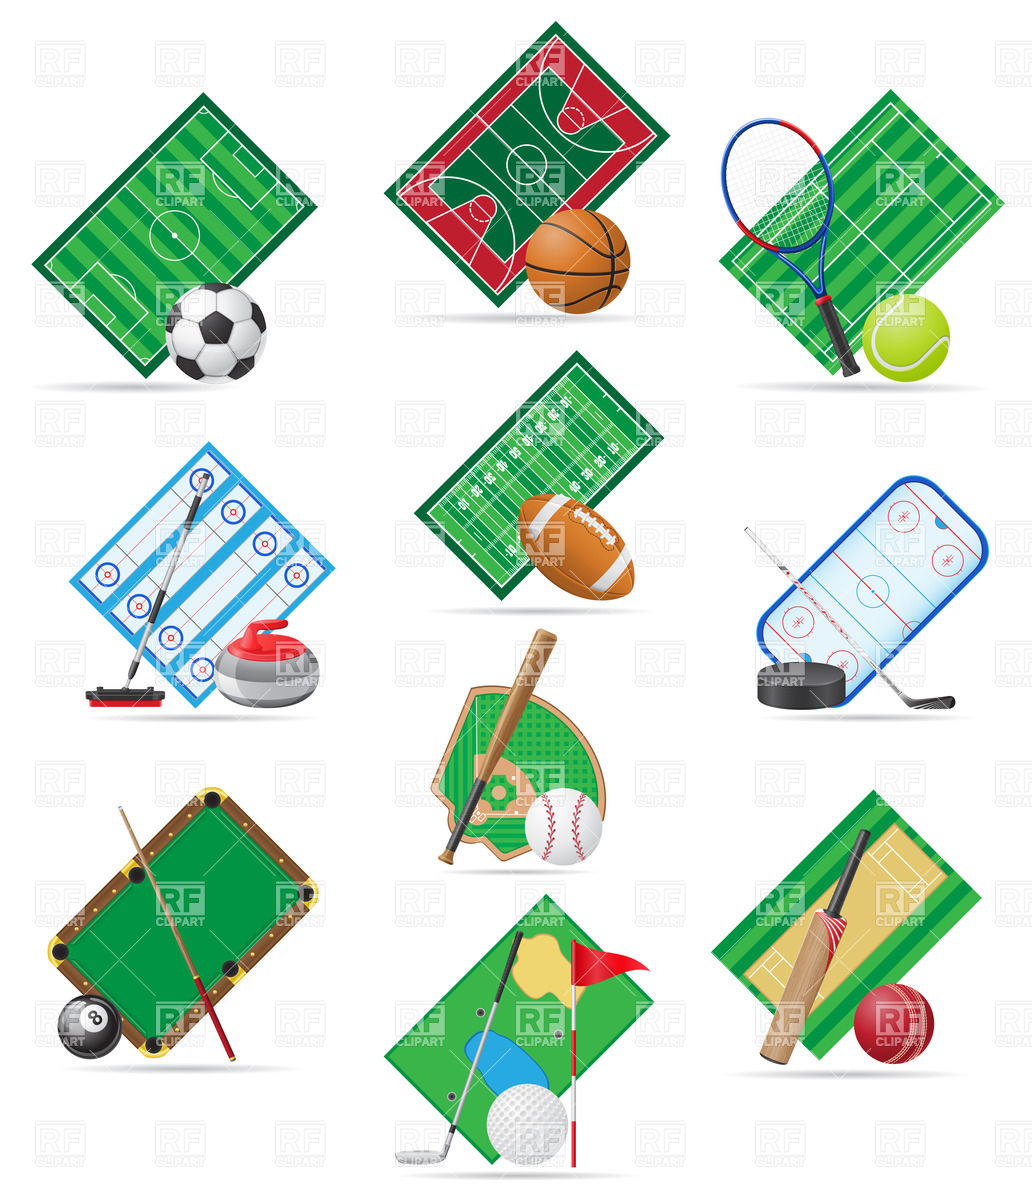 Sport fields, balls and equipment Vector Image #20977.